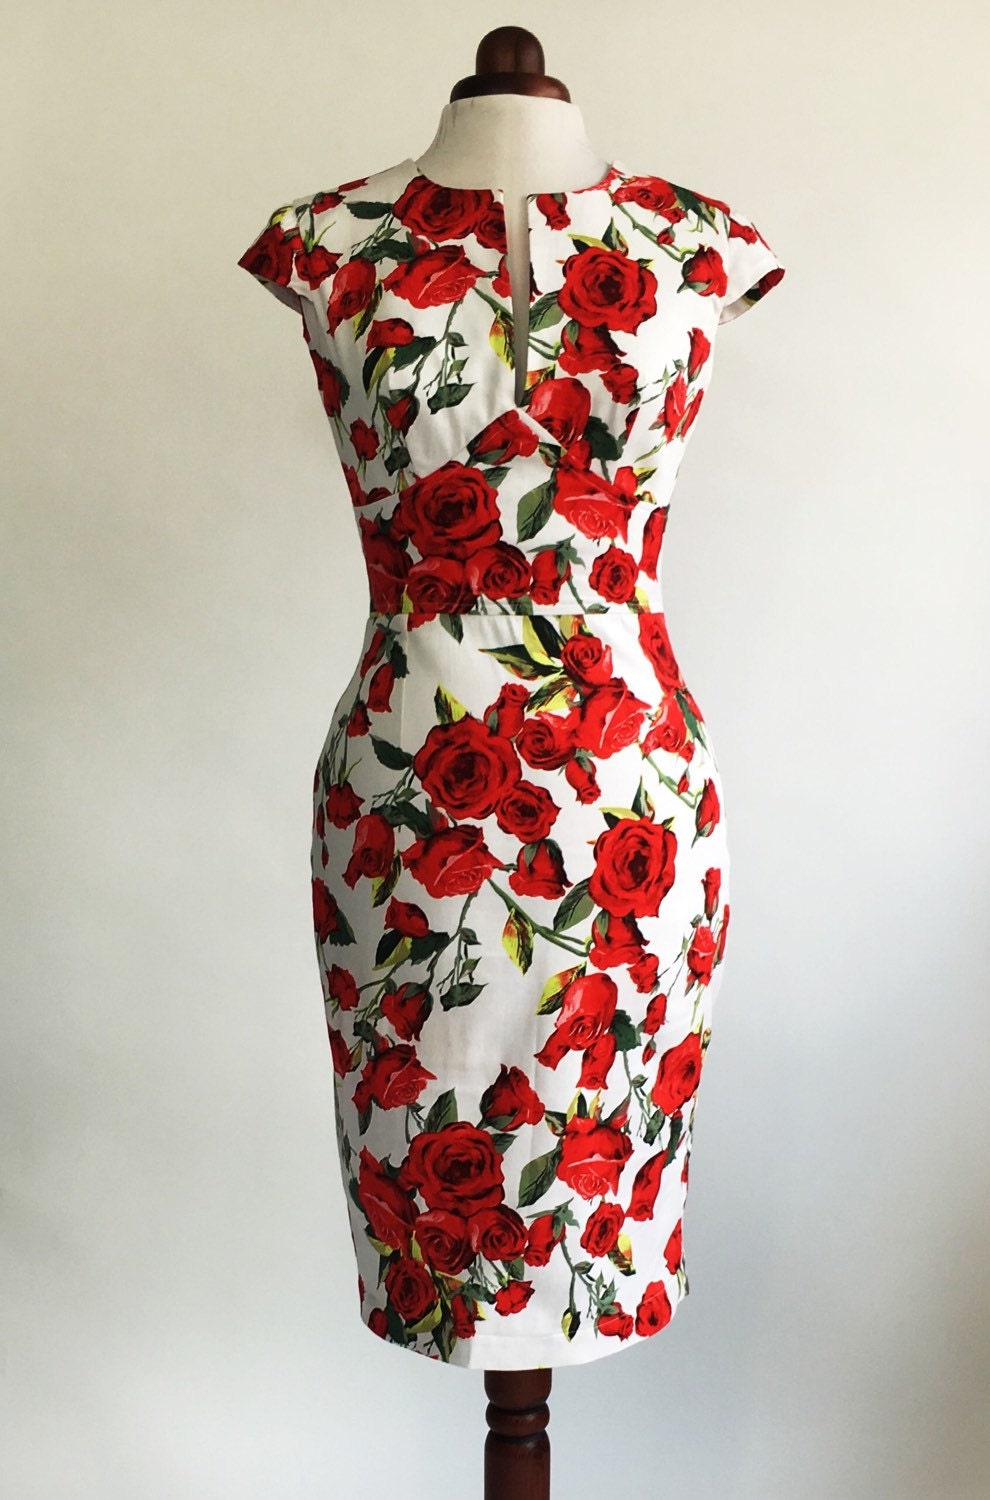 Red rose dress floral dress summer dress vintage style